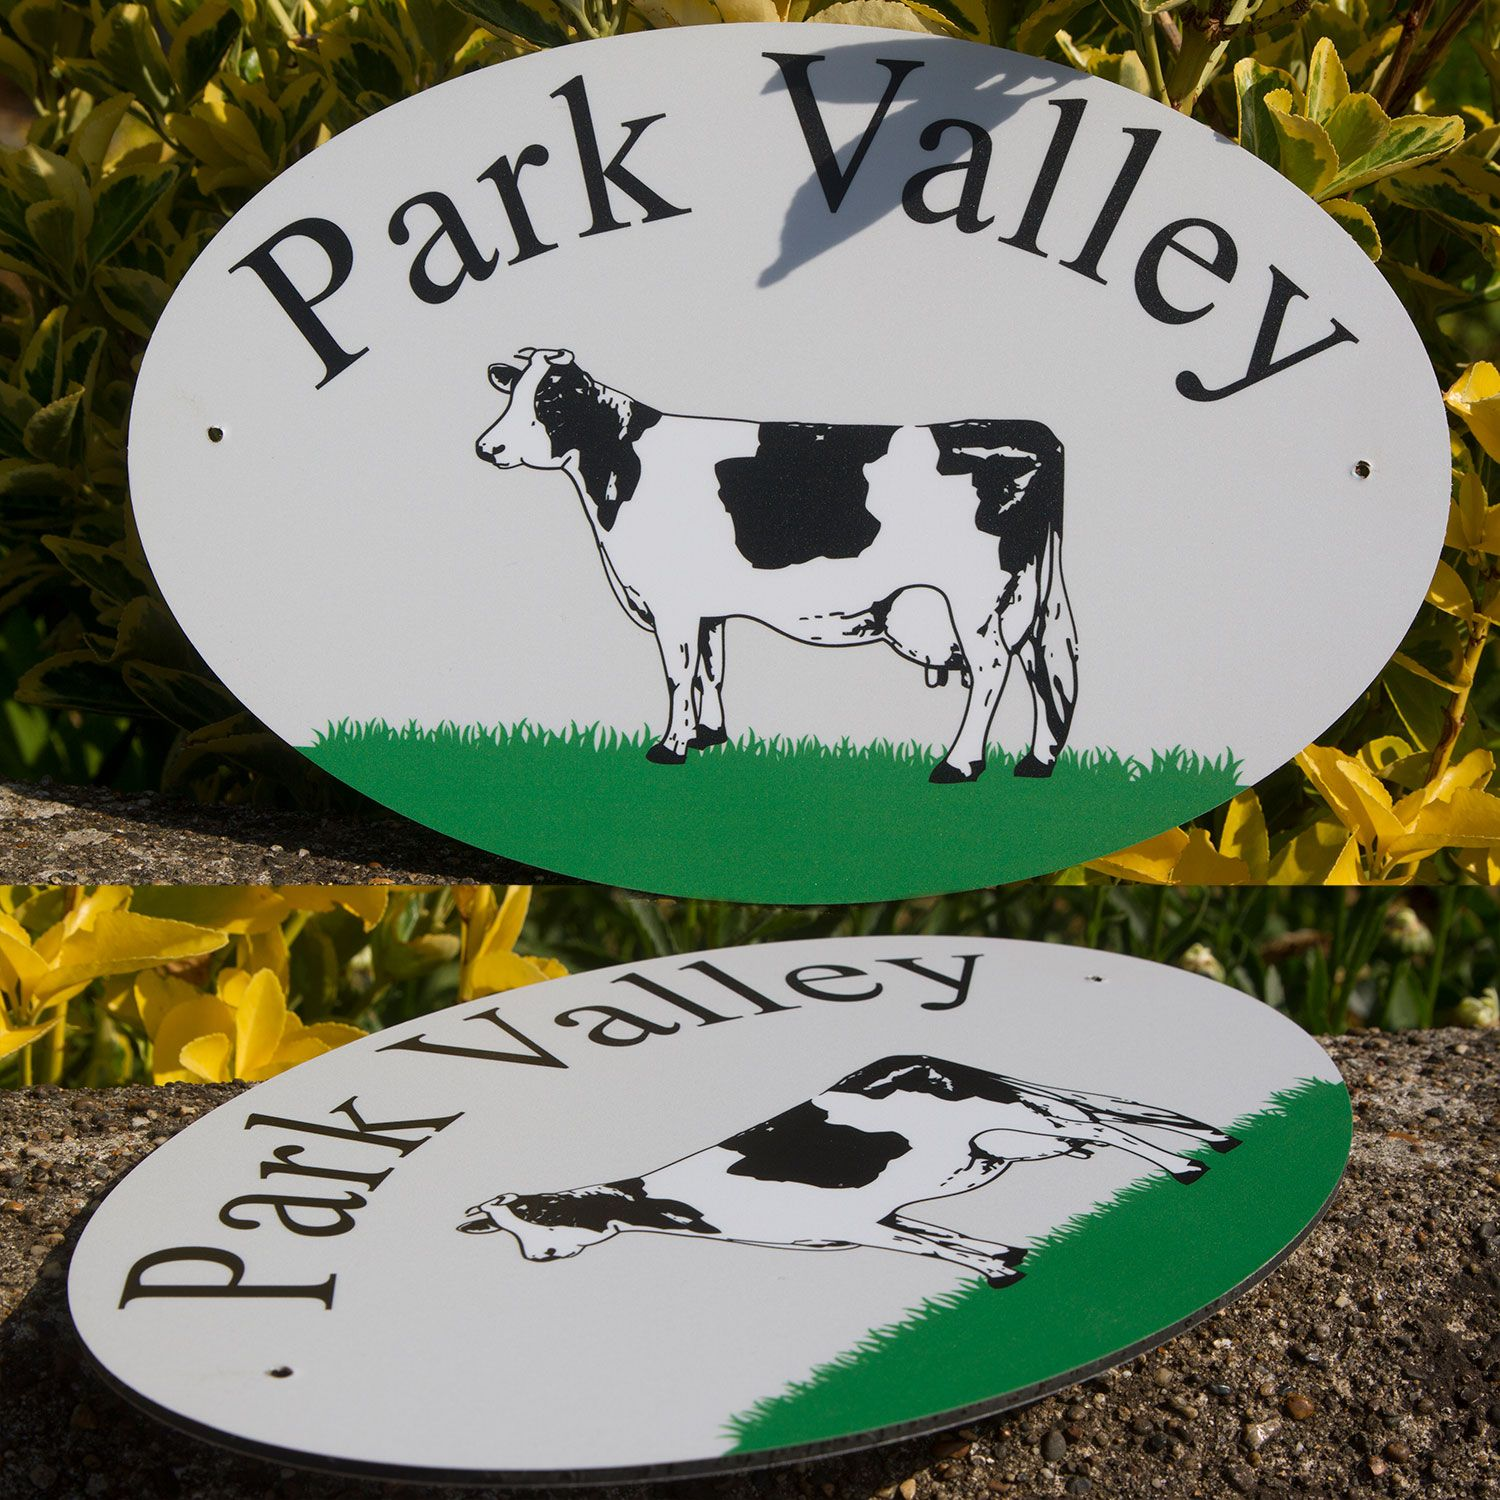 Full Colour Value House Sign - Aluminium Composite